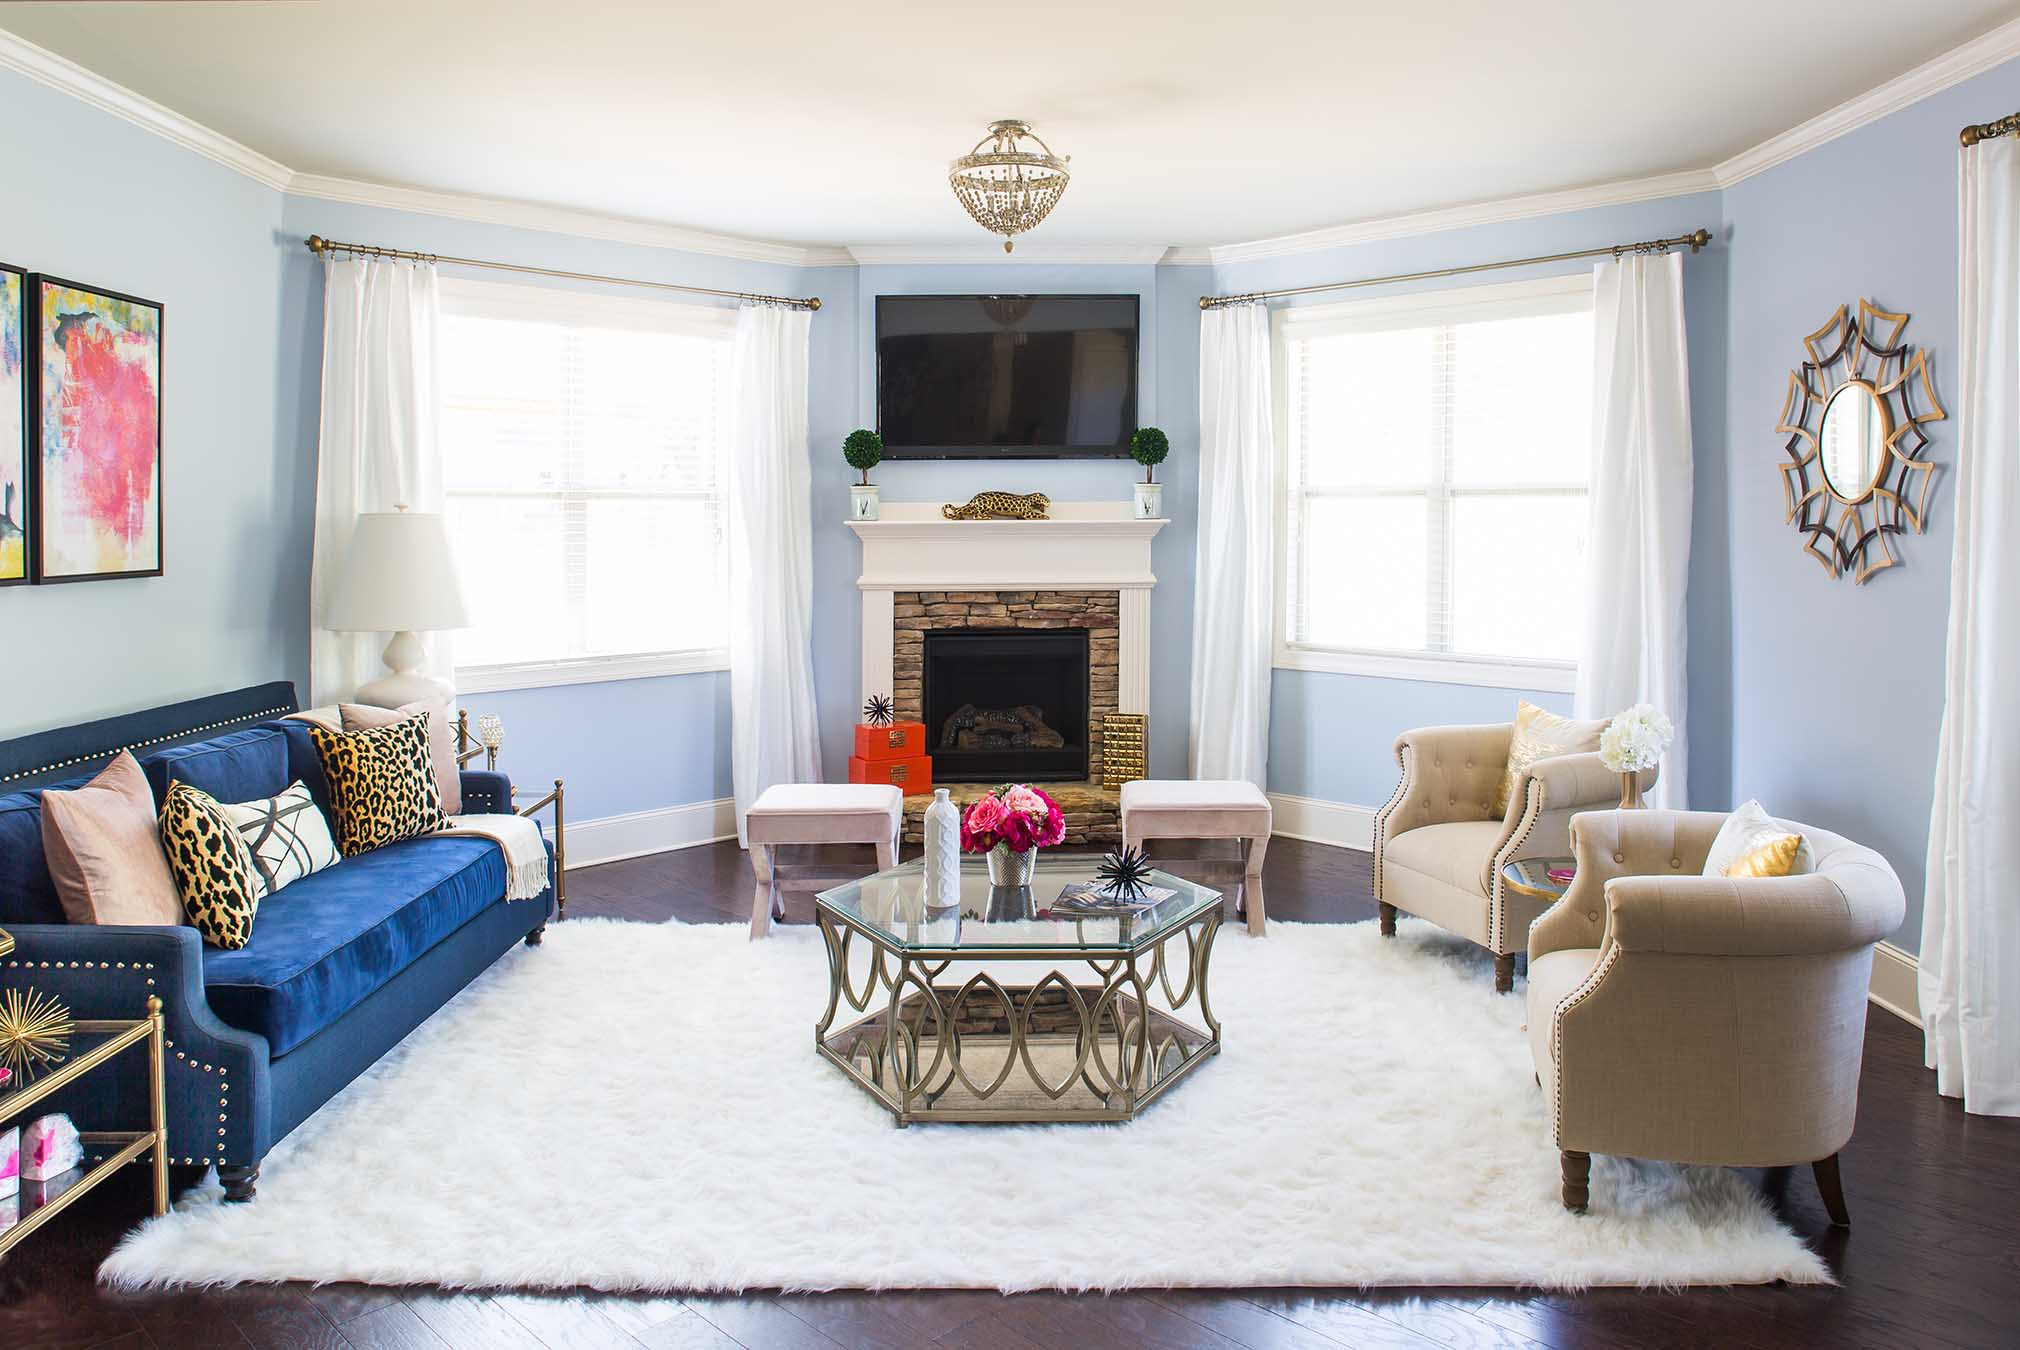 4 Tips To Find The Right Paint Color For Your Style | The Havenly Blog